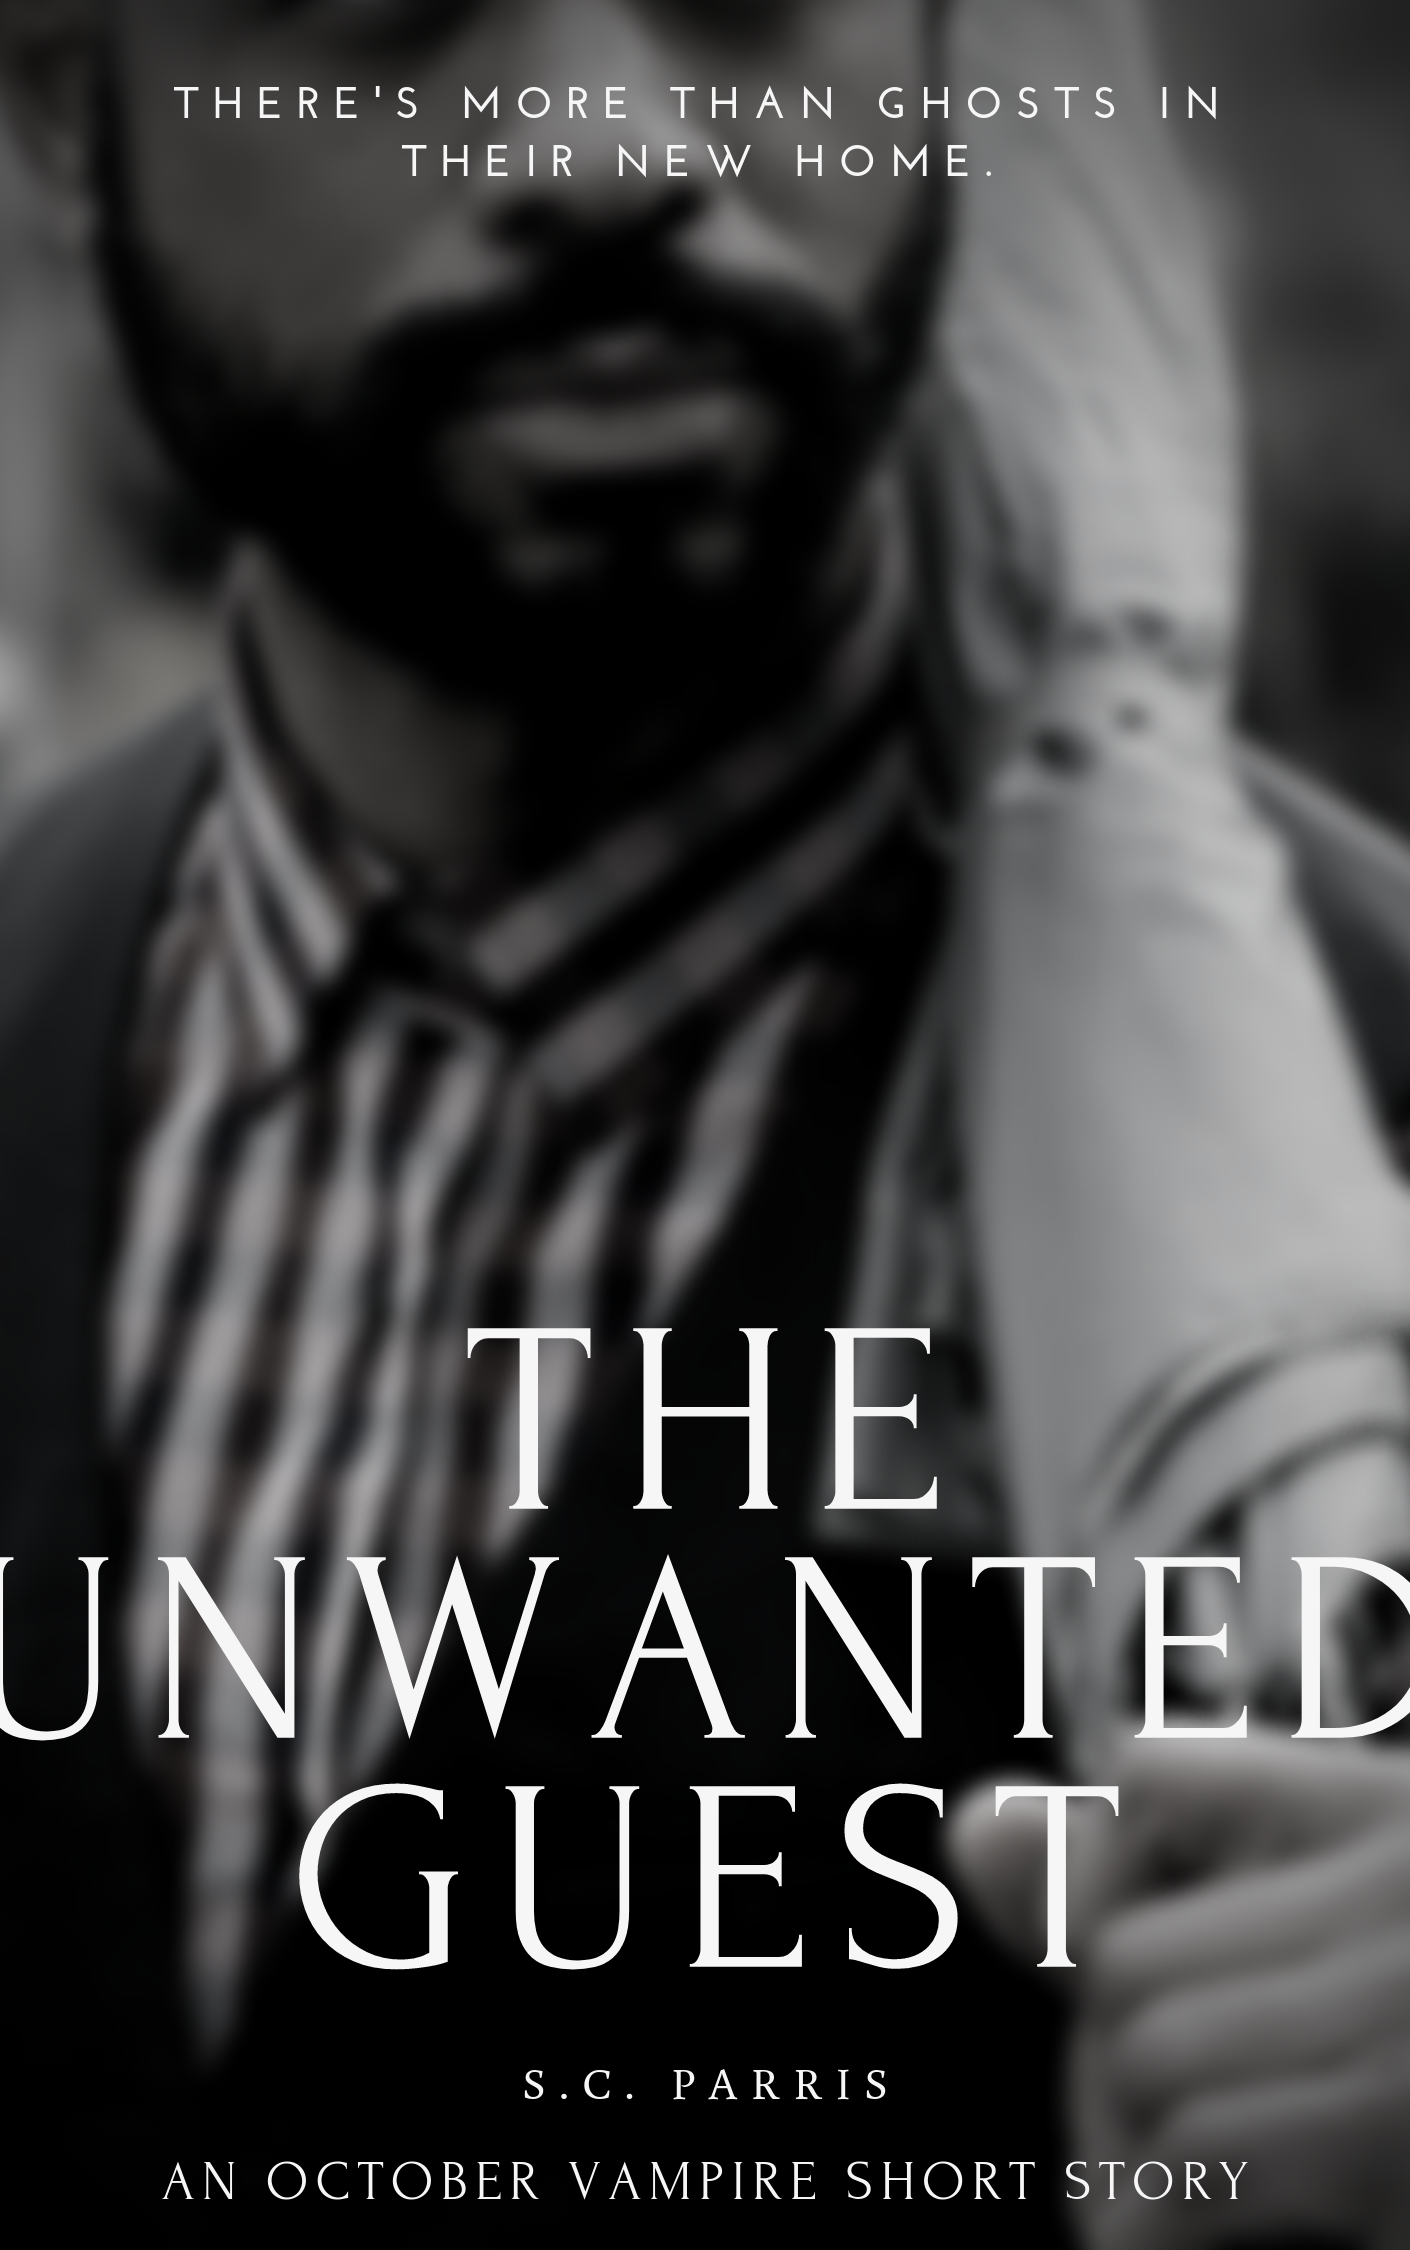 - THE UNWANTED GUEST: An October Vampire Story: October 2019The Englewood's just wanted to enjoy their new home, but several ghosts and one charming, persistent vampire are determined to see them dead before they can get around to it.